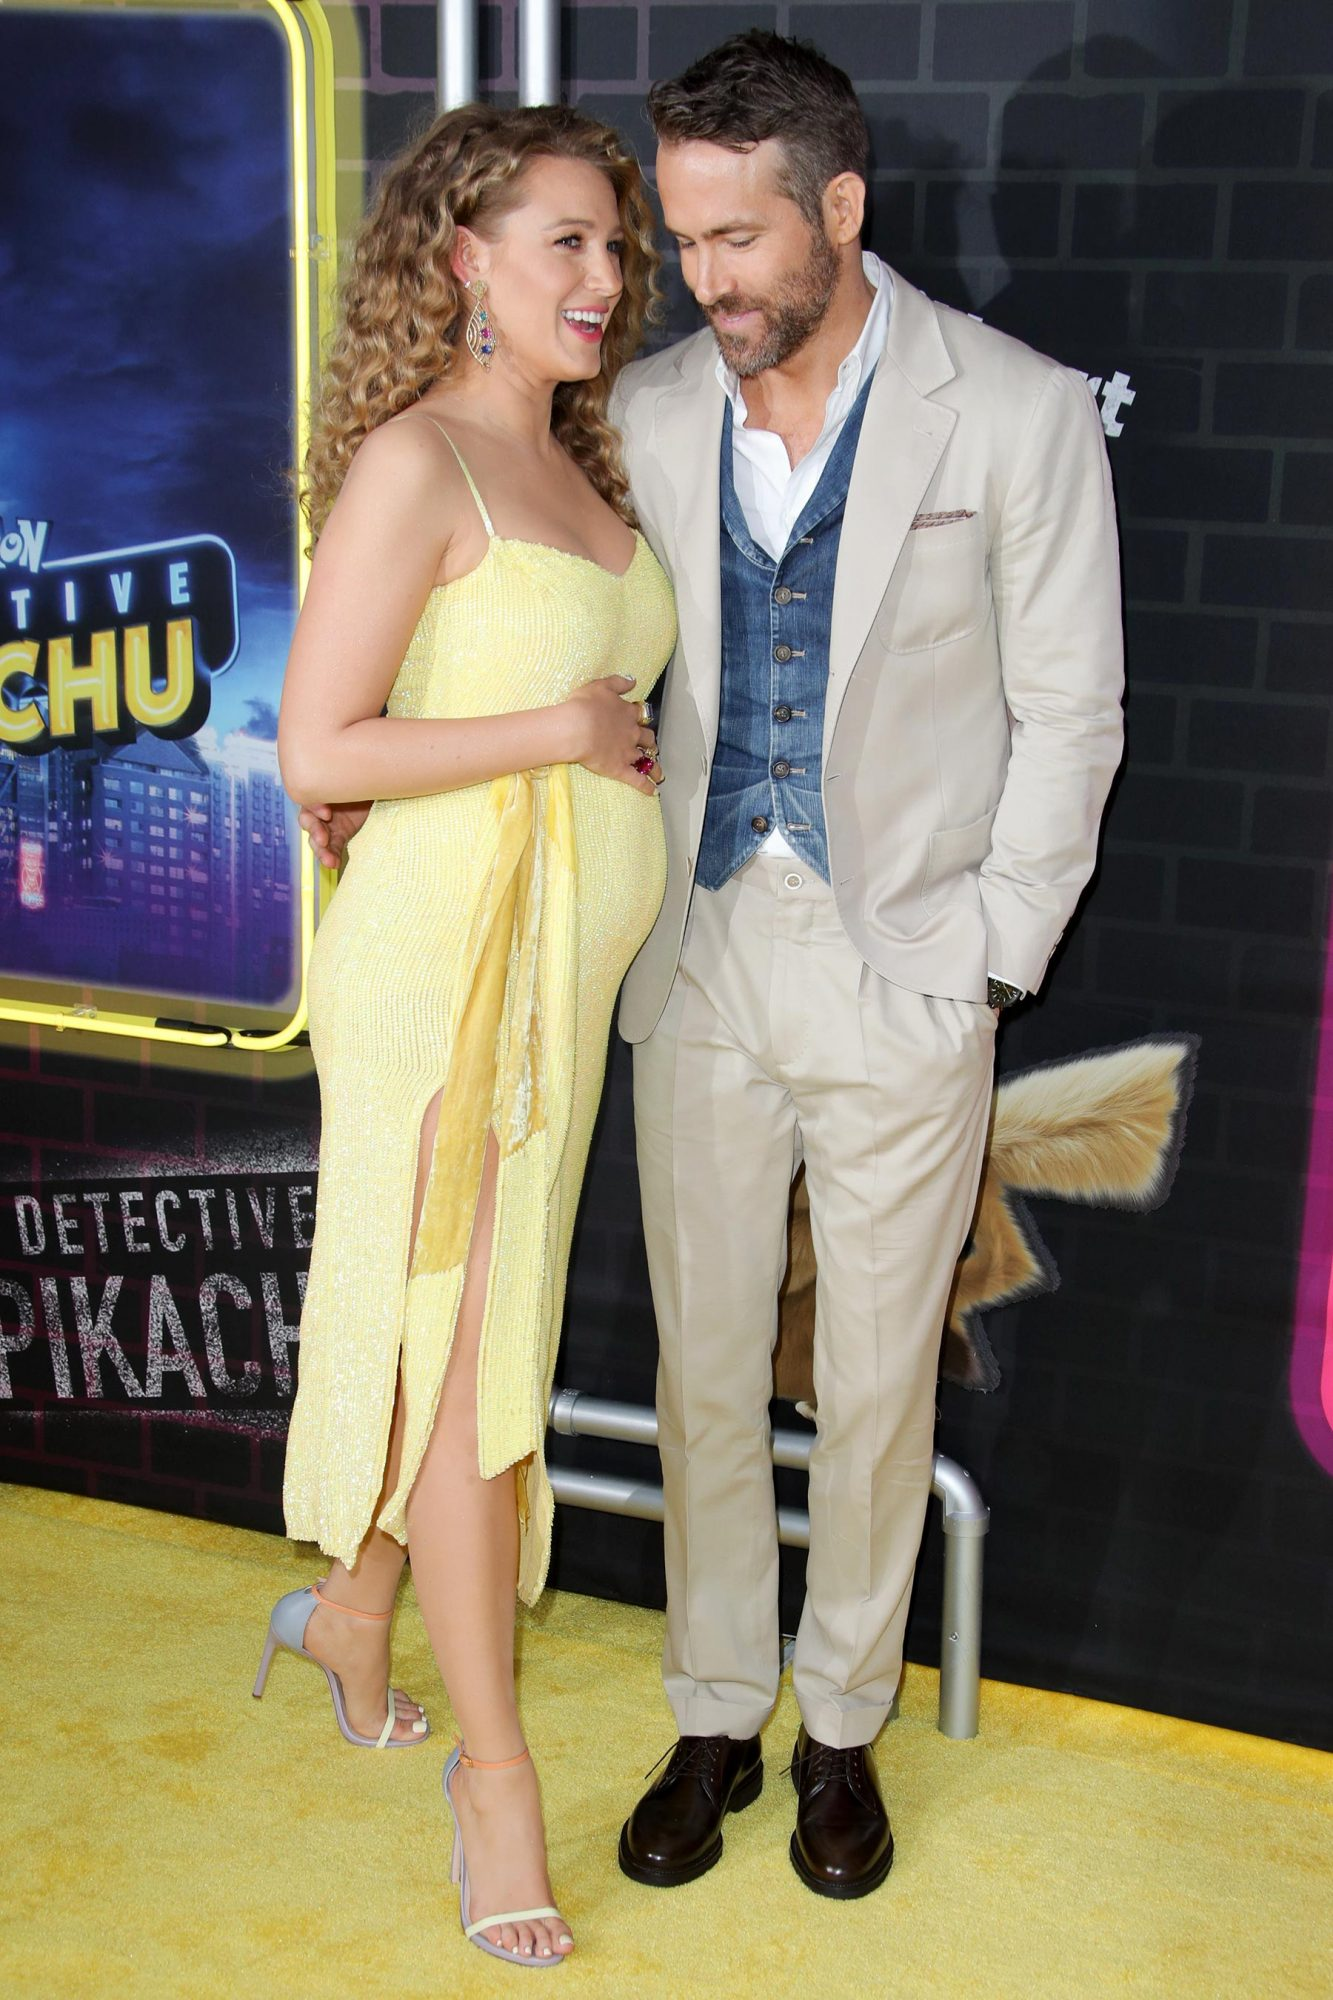 Mandatory Credit: Photo by Matt Baron/REX/Shutterstock (10227023ao) Blake Lively and Ryan Reynolds 'Pokemon Detective Pikachu' film premiere, Arrivals, New York, USA - 02 May 2019